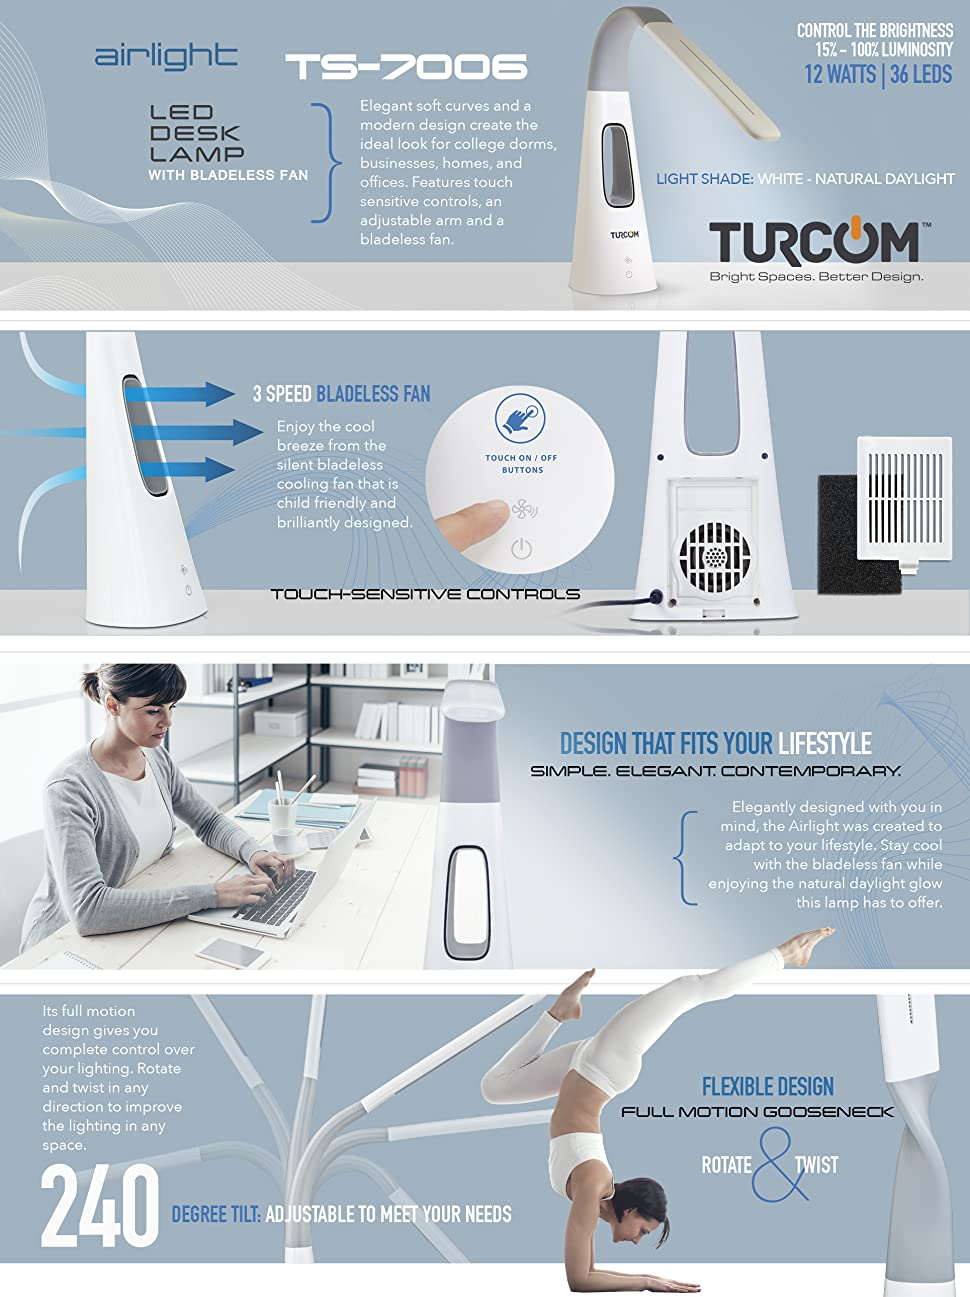 turcom airlight led desk lamp with bladeless cooling fan dimmable light dimmer function for reading three fan speeds